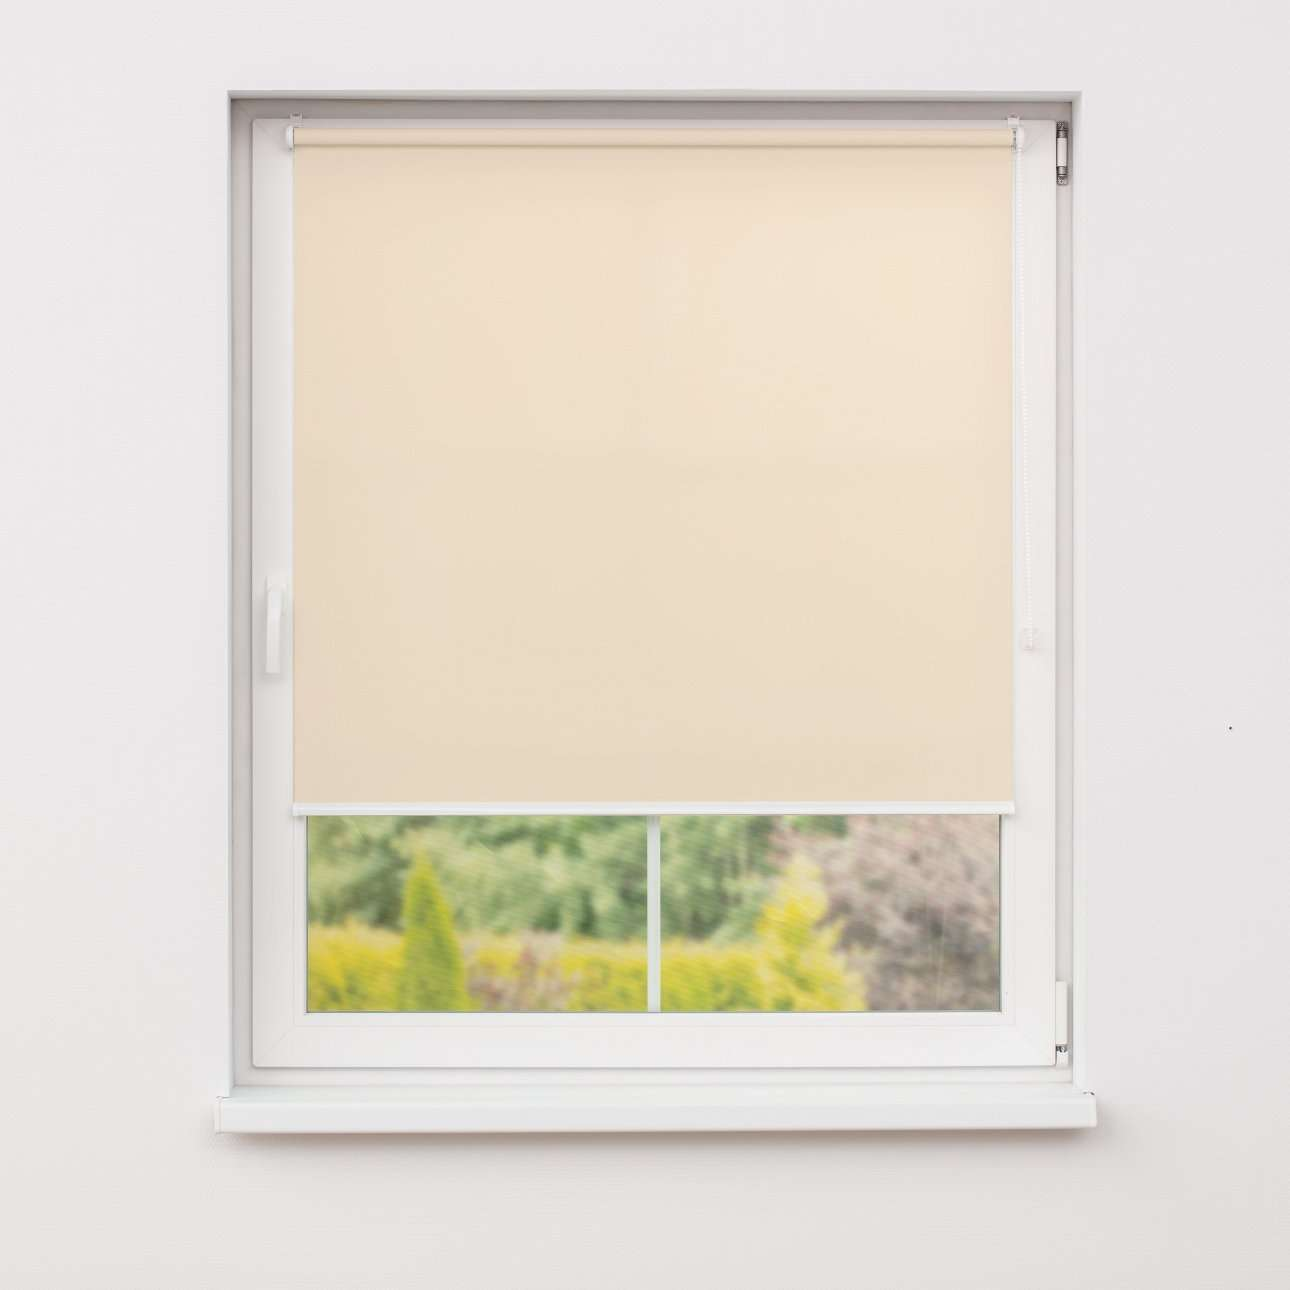 Mini roller blind (compact design for fitting inside window recess) in collection Roller blind transparent, fabric: 4996